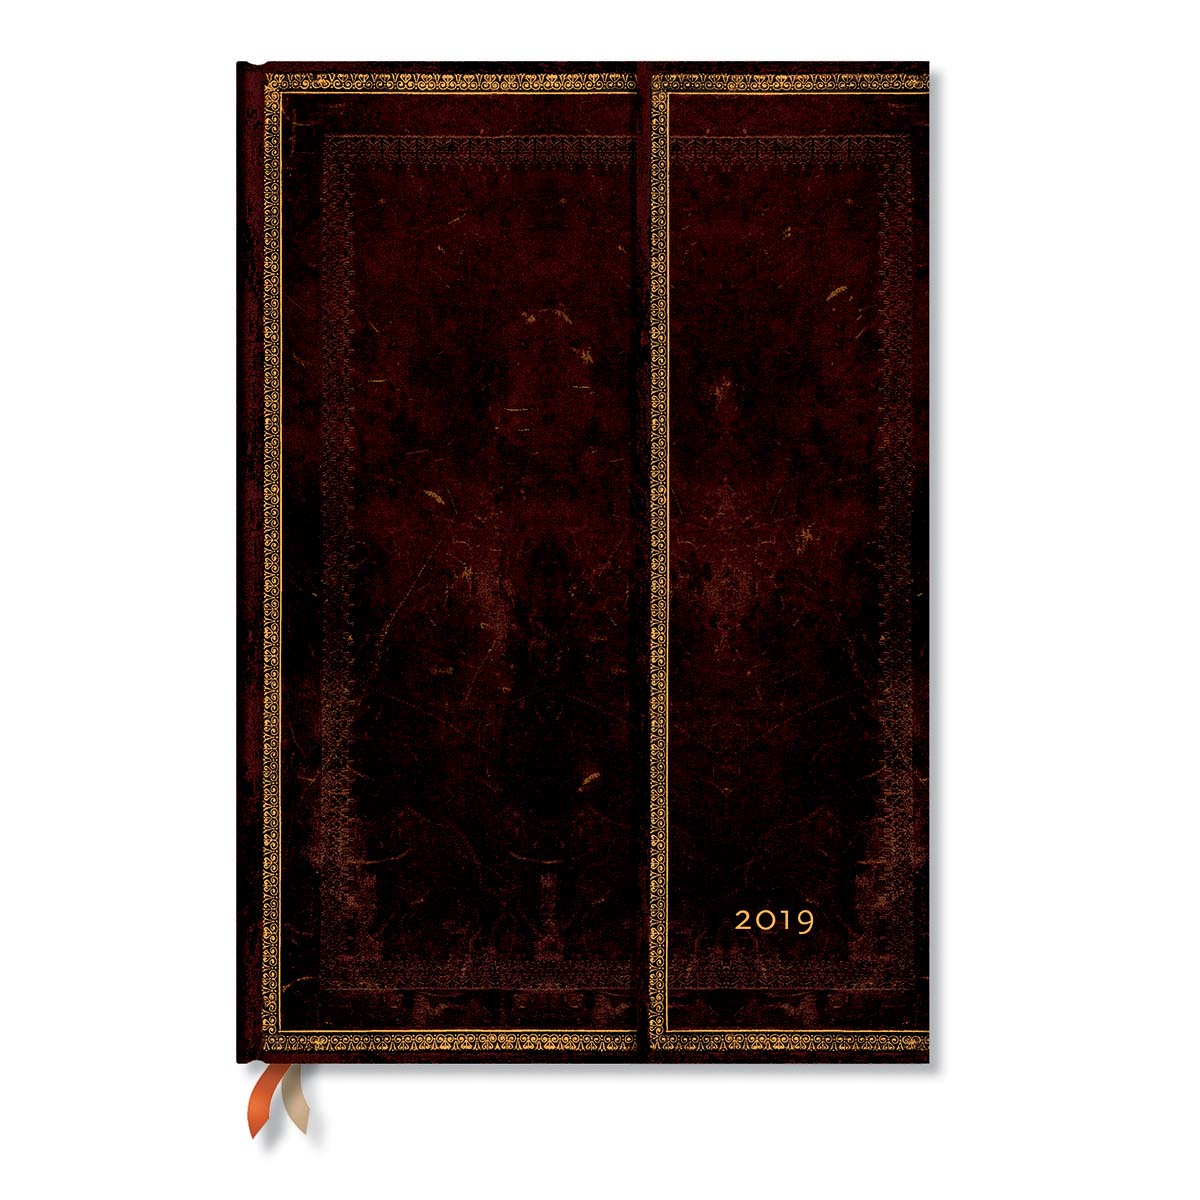 Paperblanks Grande Black Moroccan 2019 Week-at-a-time Planner